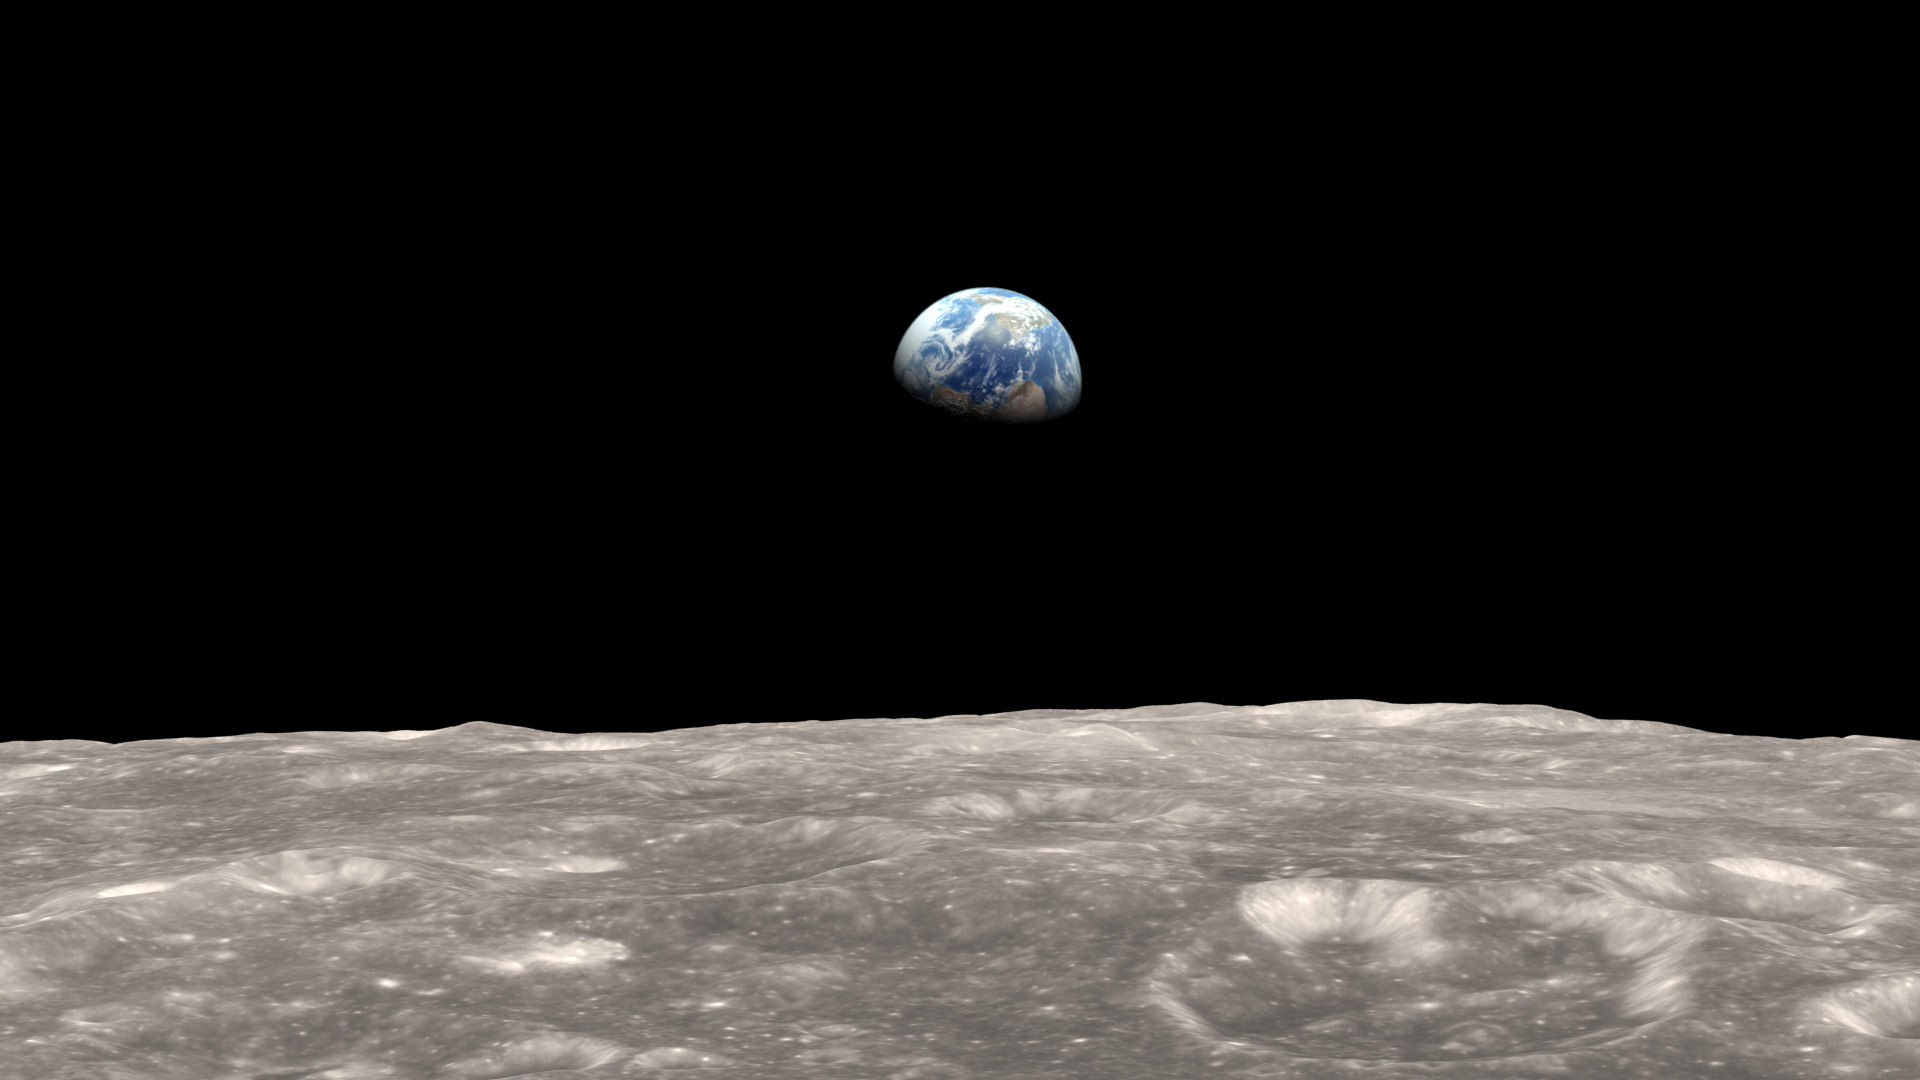 Scientists-Measure-the-Deformation-of-the-Moon-Due-to-Earths-Gravity